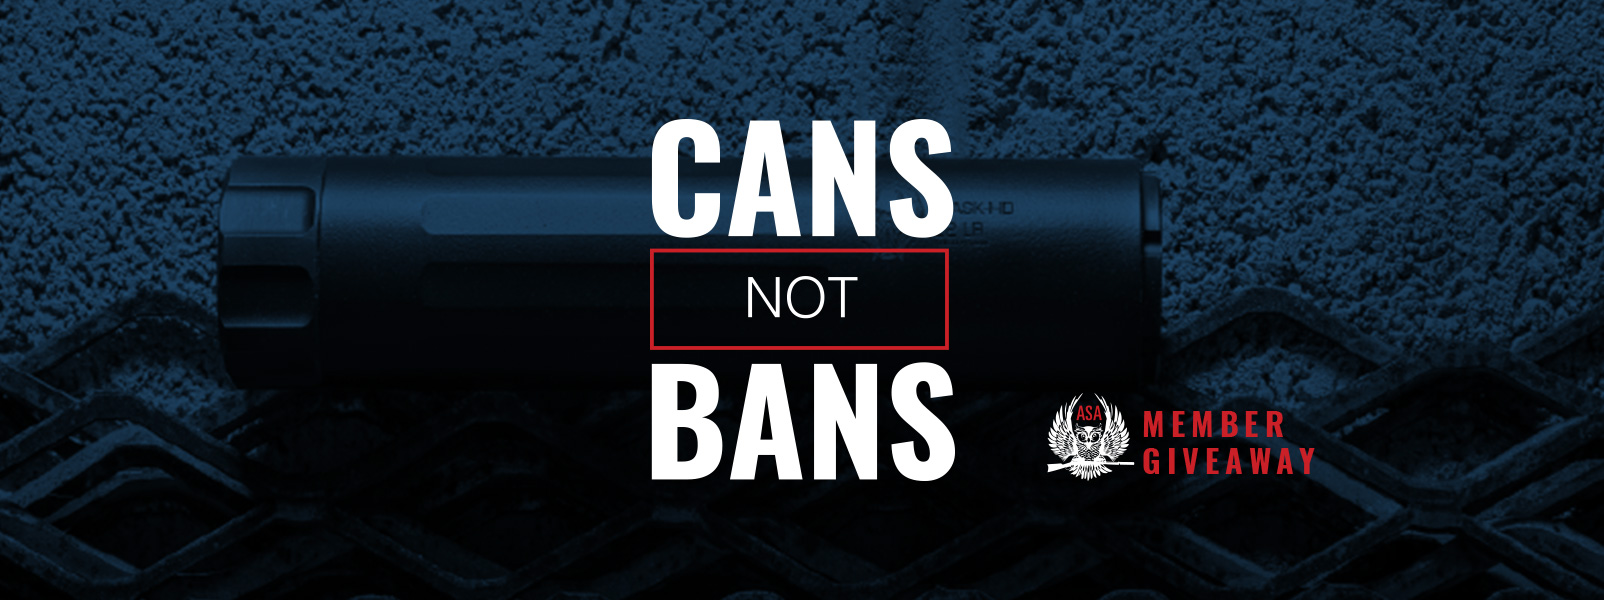 Winners of the Cans Not Bans Giveaway Announced!